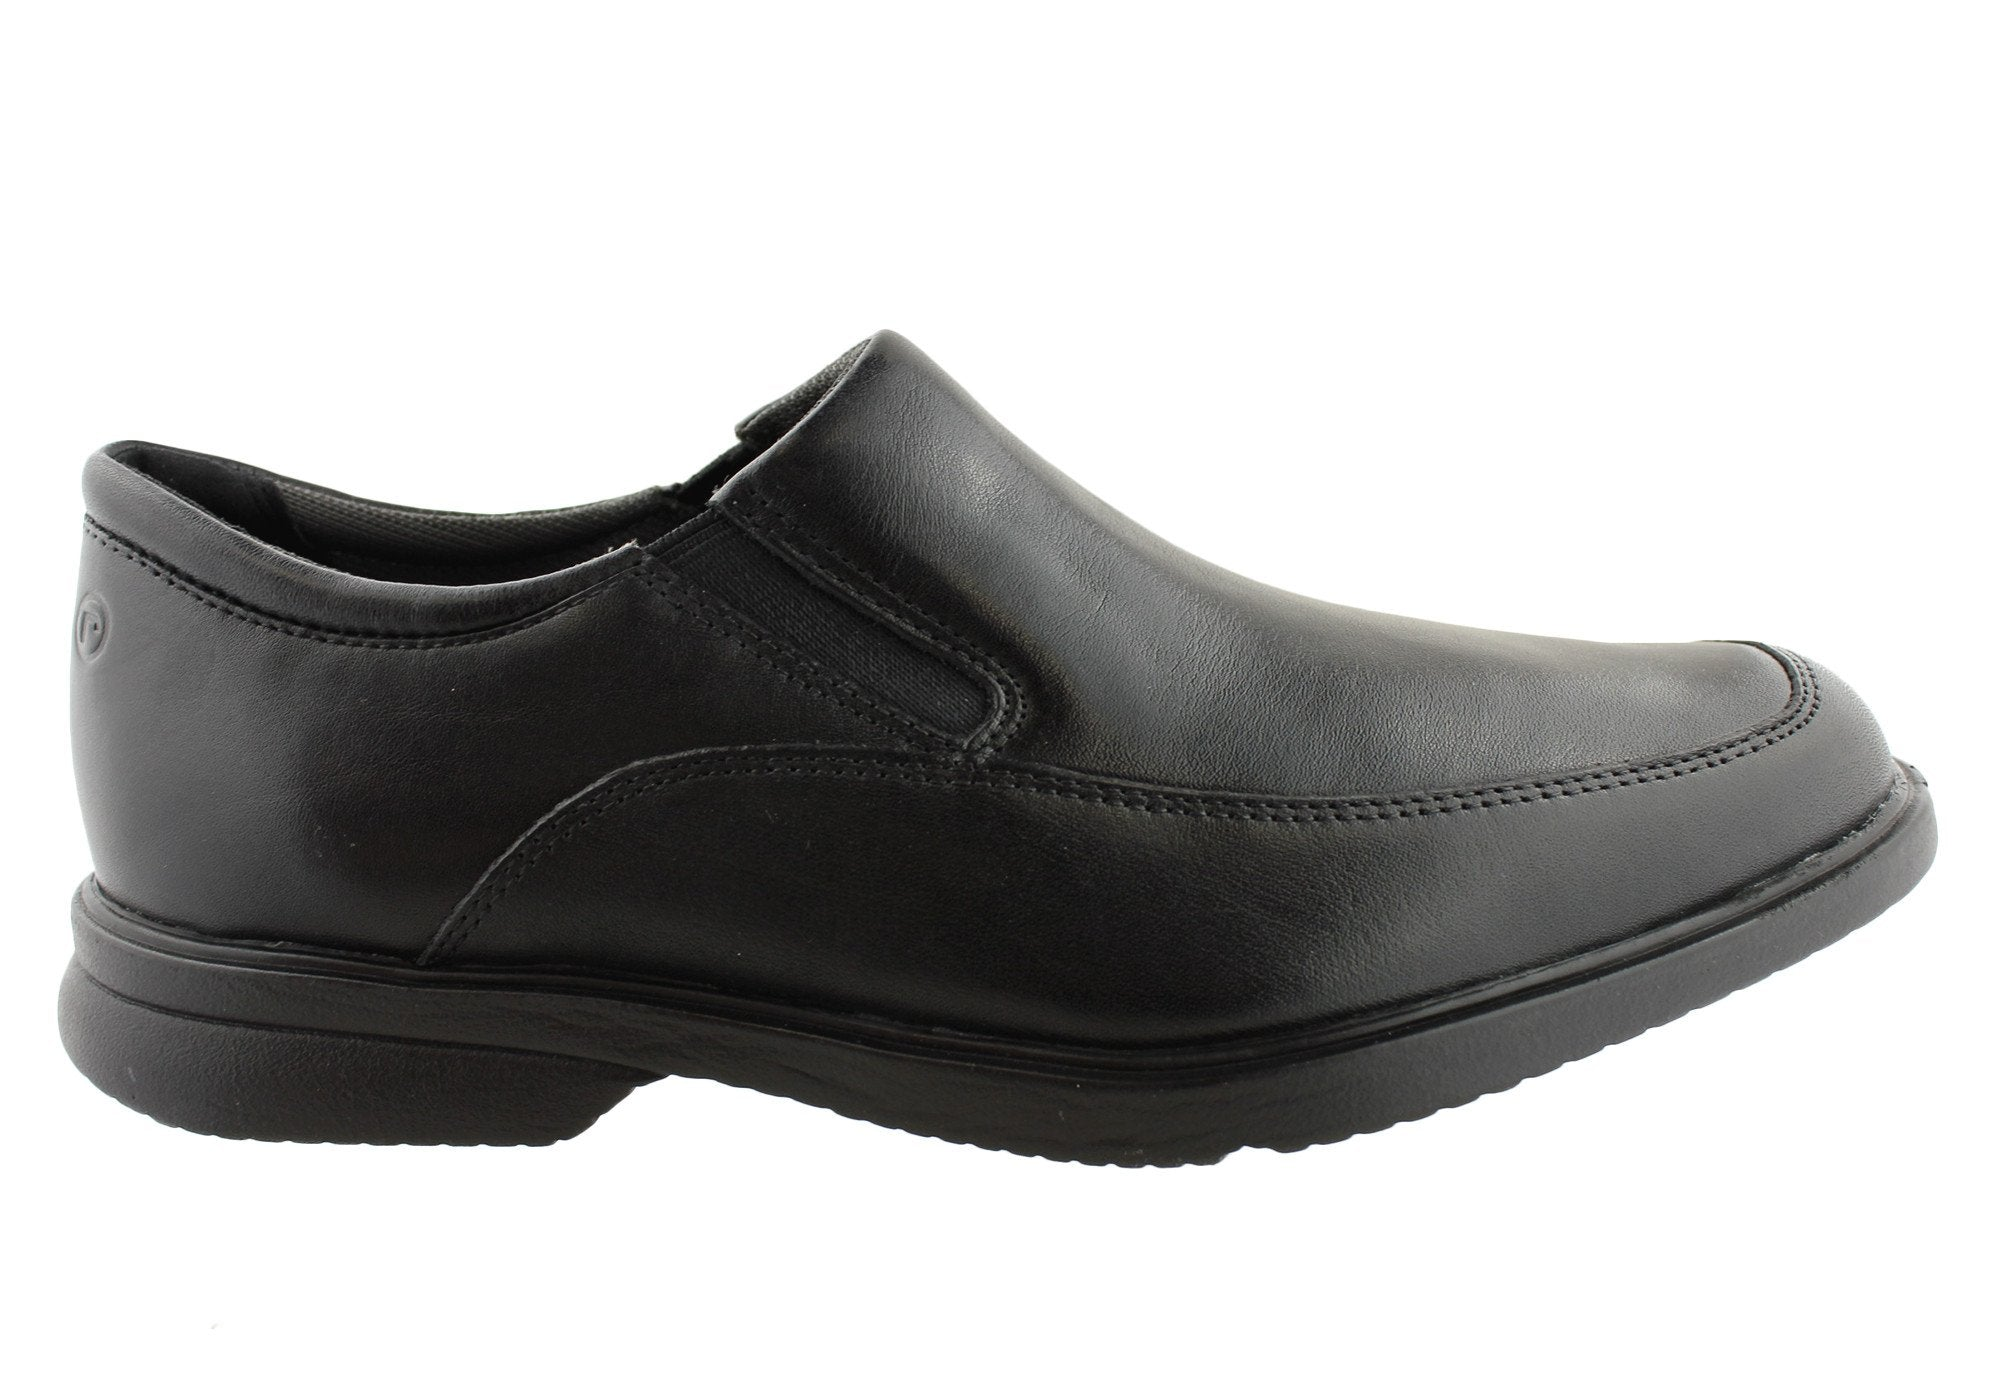 89126822e8fa Rockport Aderner Mens Leather Wide Fit Slip On Shoes